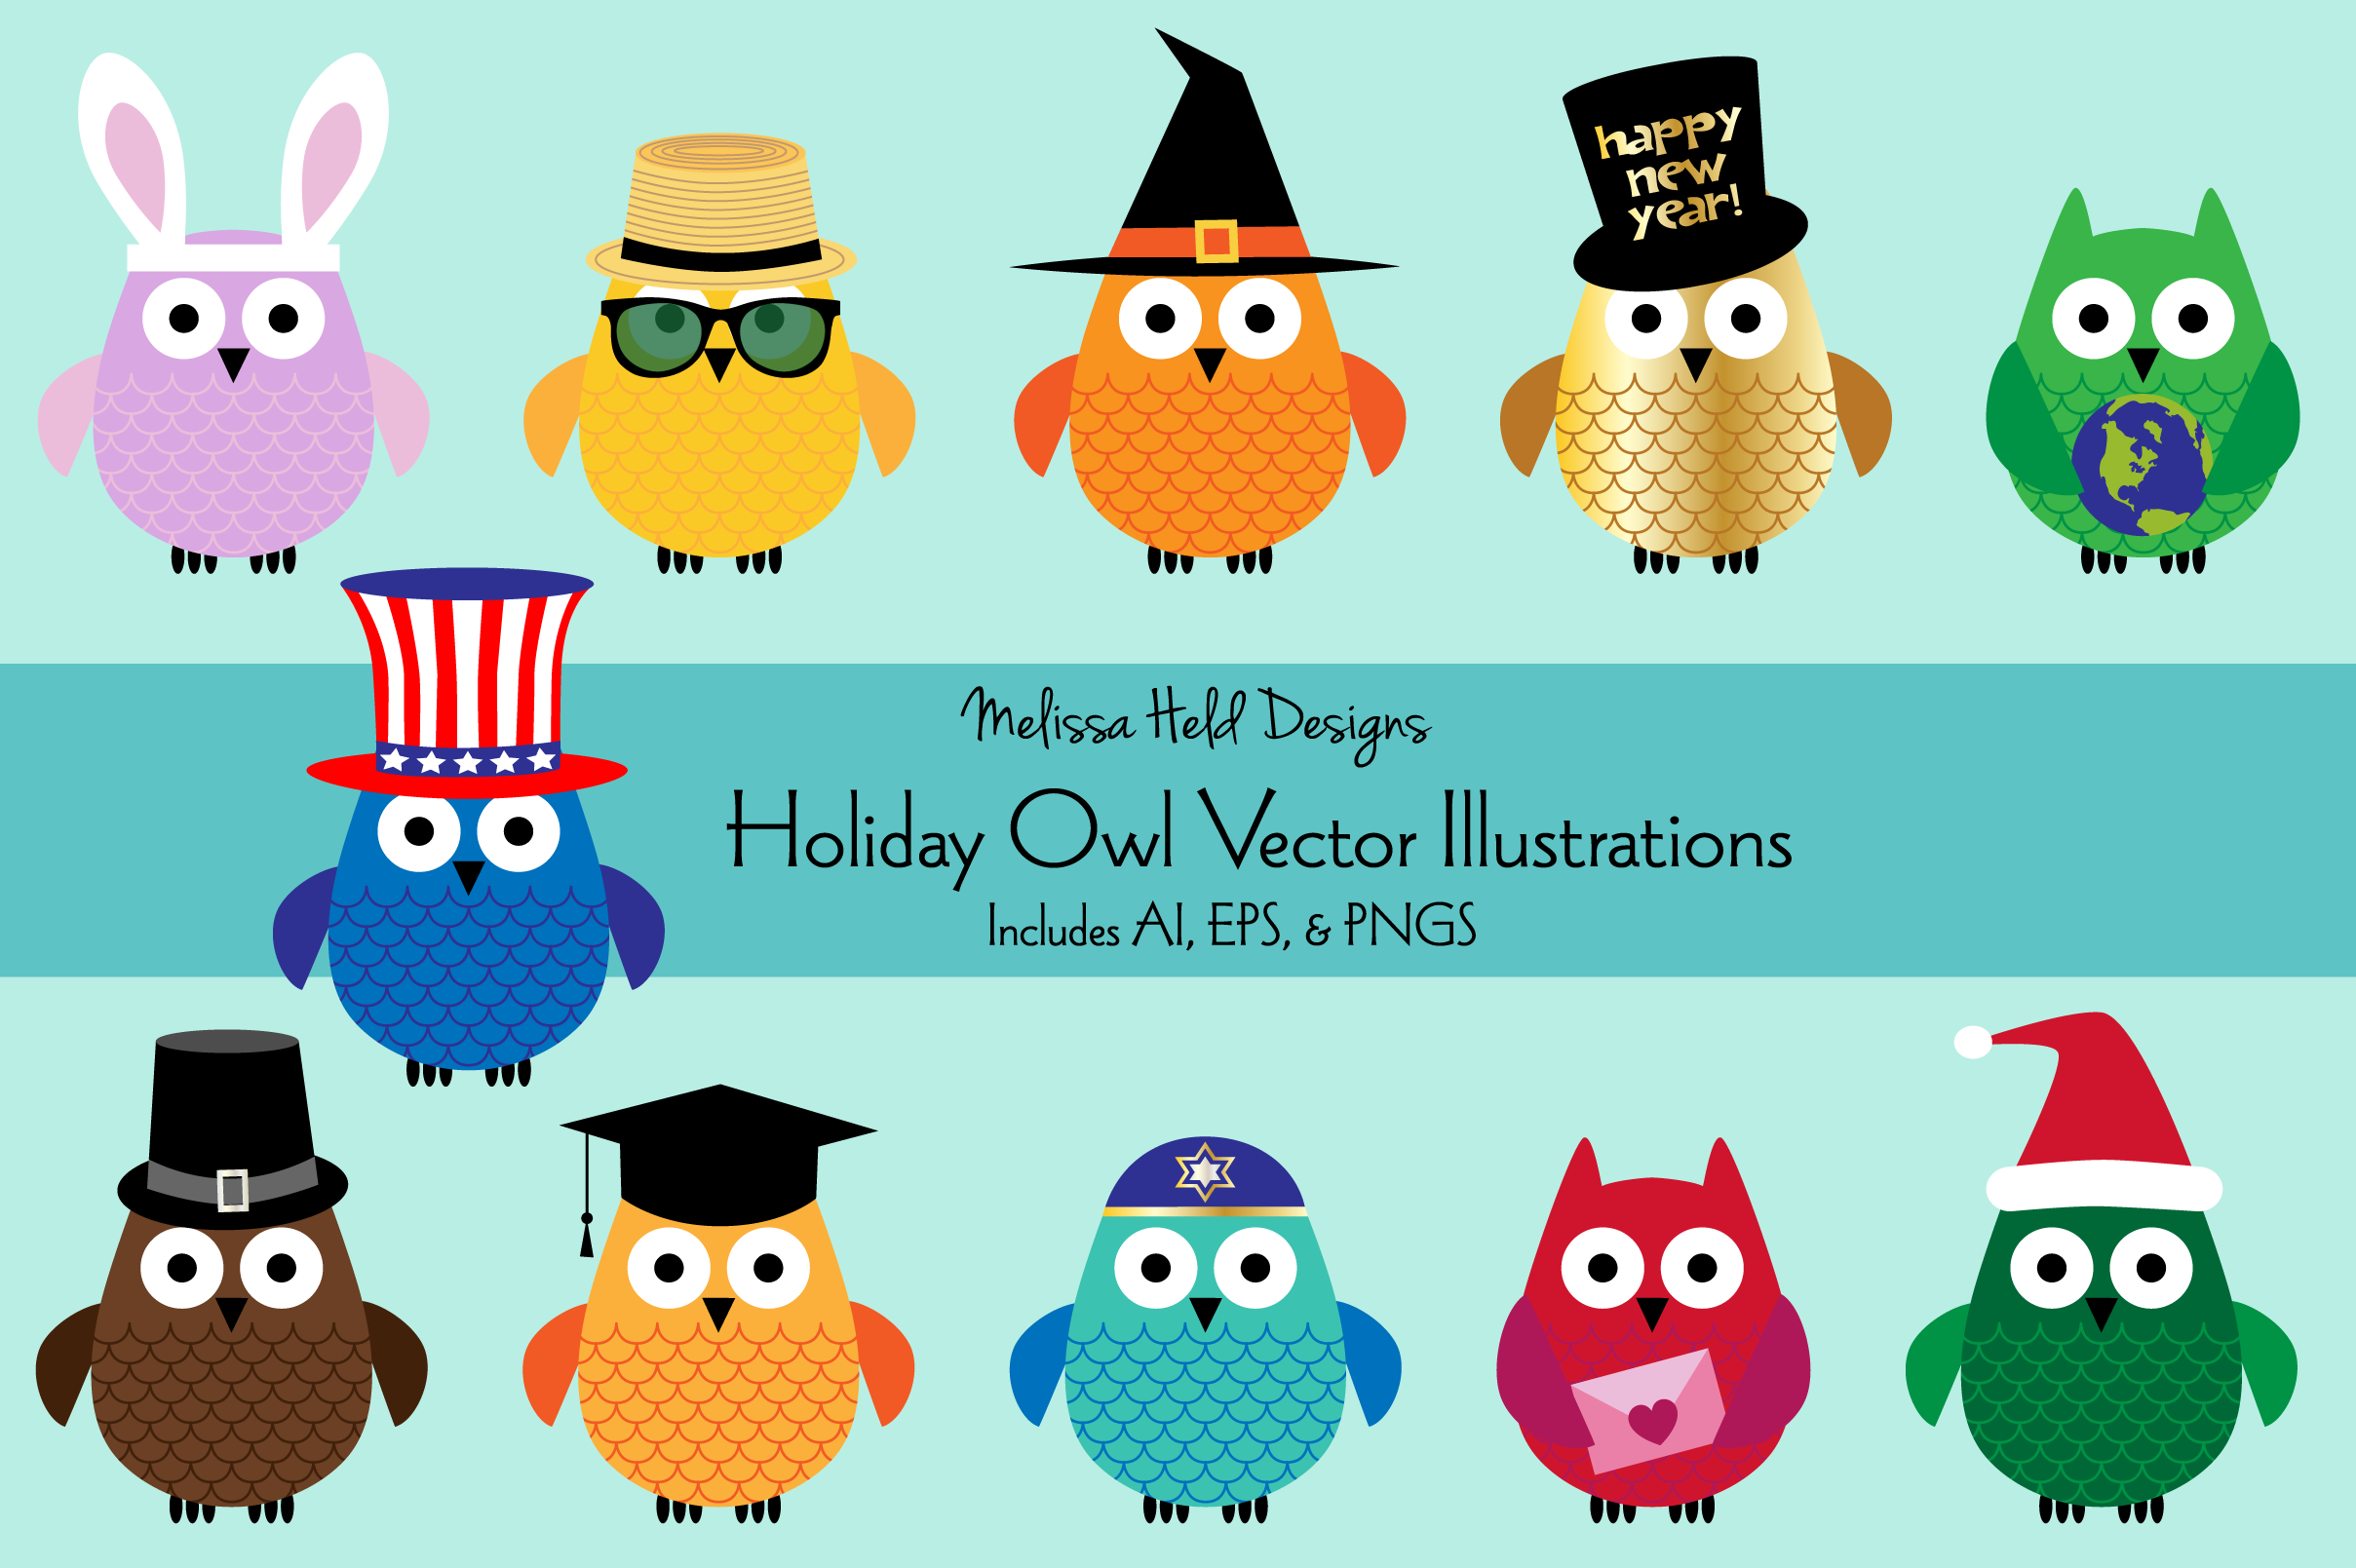 Download Free Holiday Owl Vector Illustrations Graphic By Melissa Held Designs Creative Fabrica for Cricut Explore, Silhouette and other cutting machines.